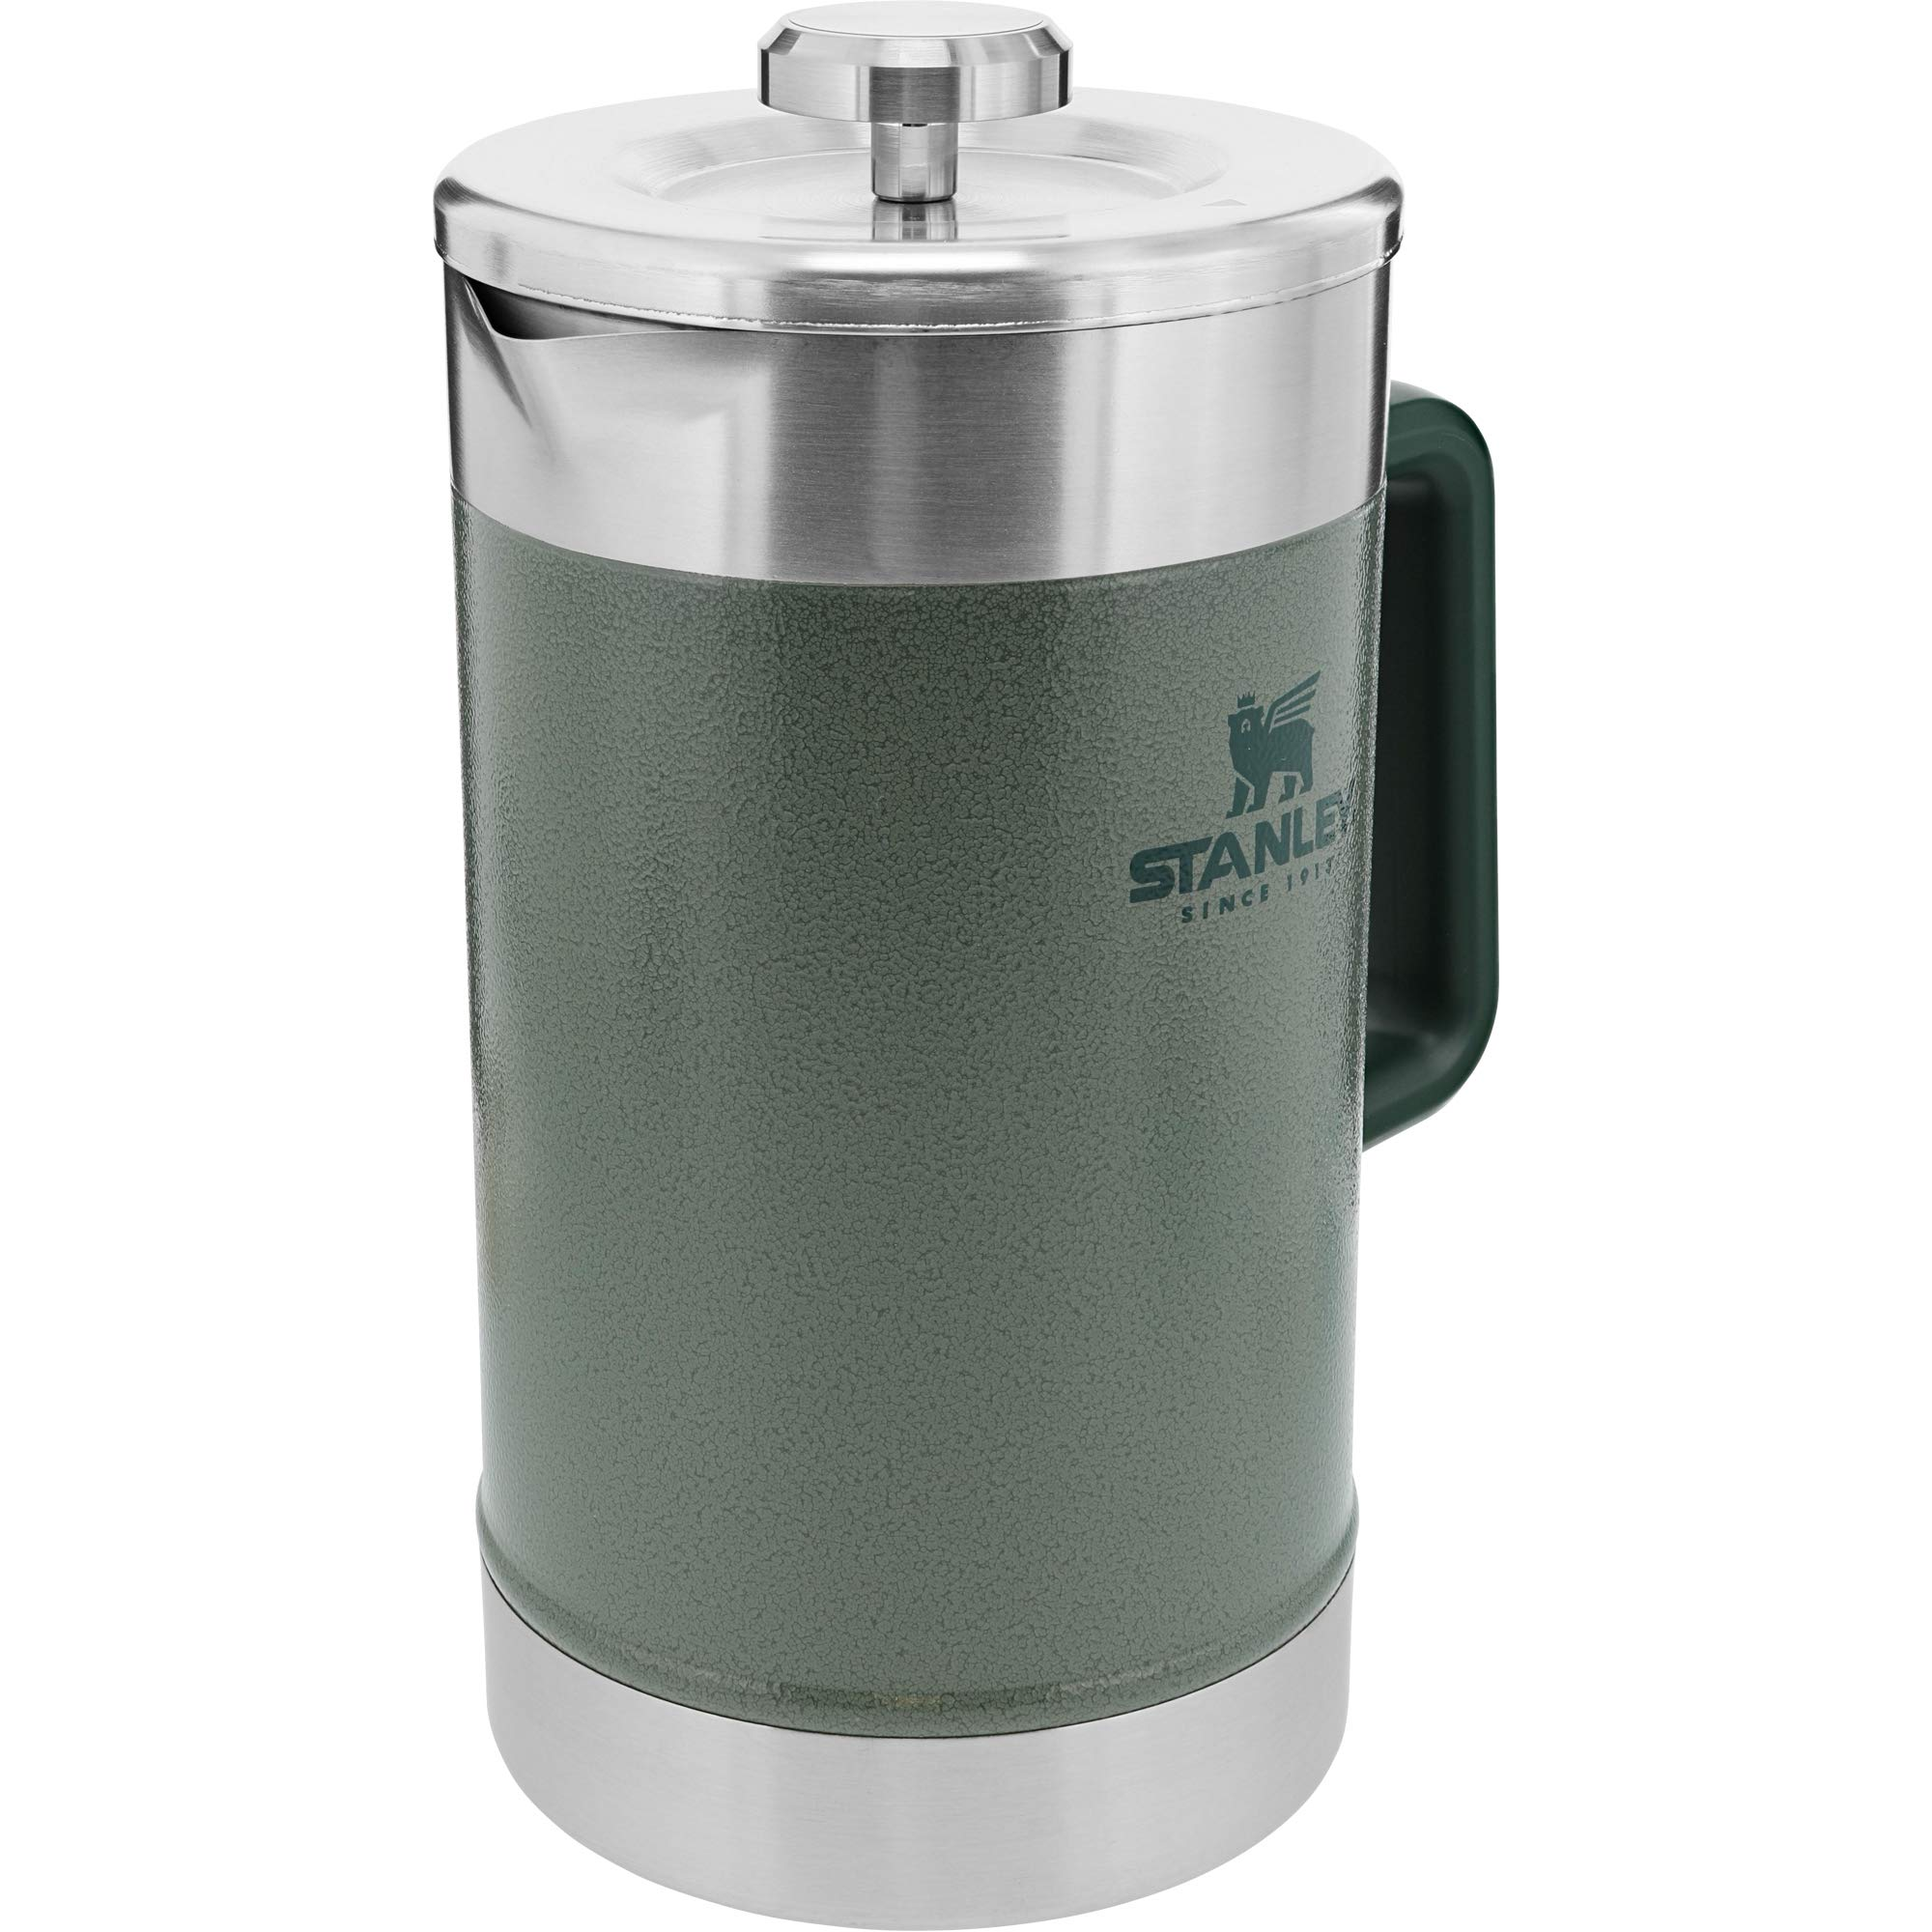 Stanley Classic Stay Hot French Press Hammertone Green 48oz by Stanley (Image #3)